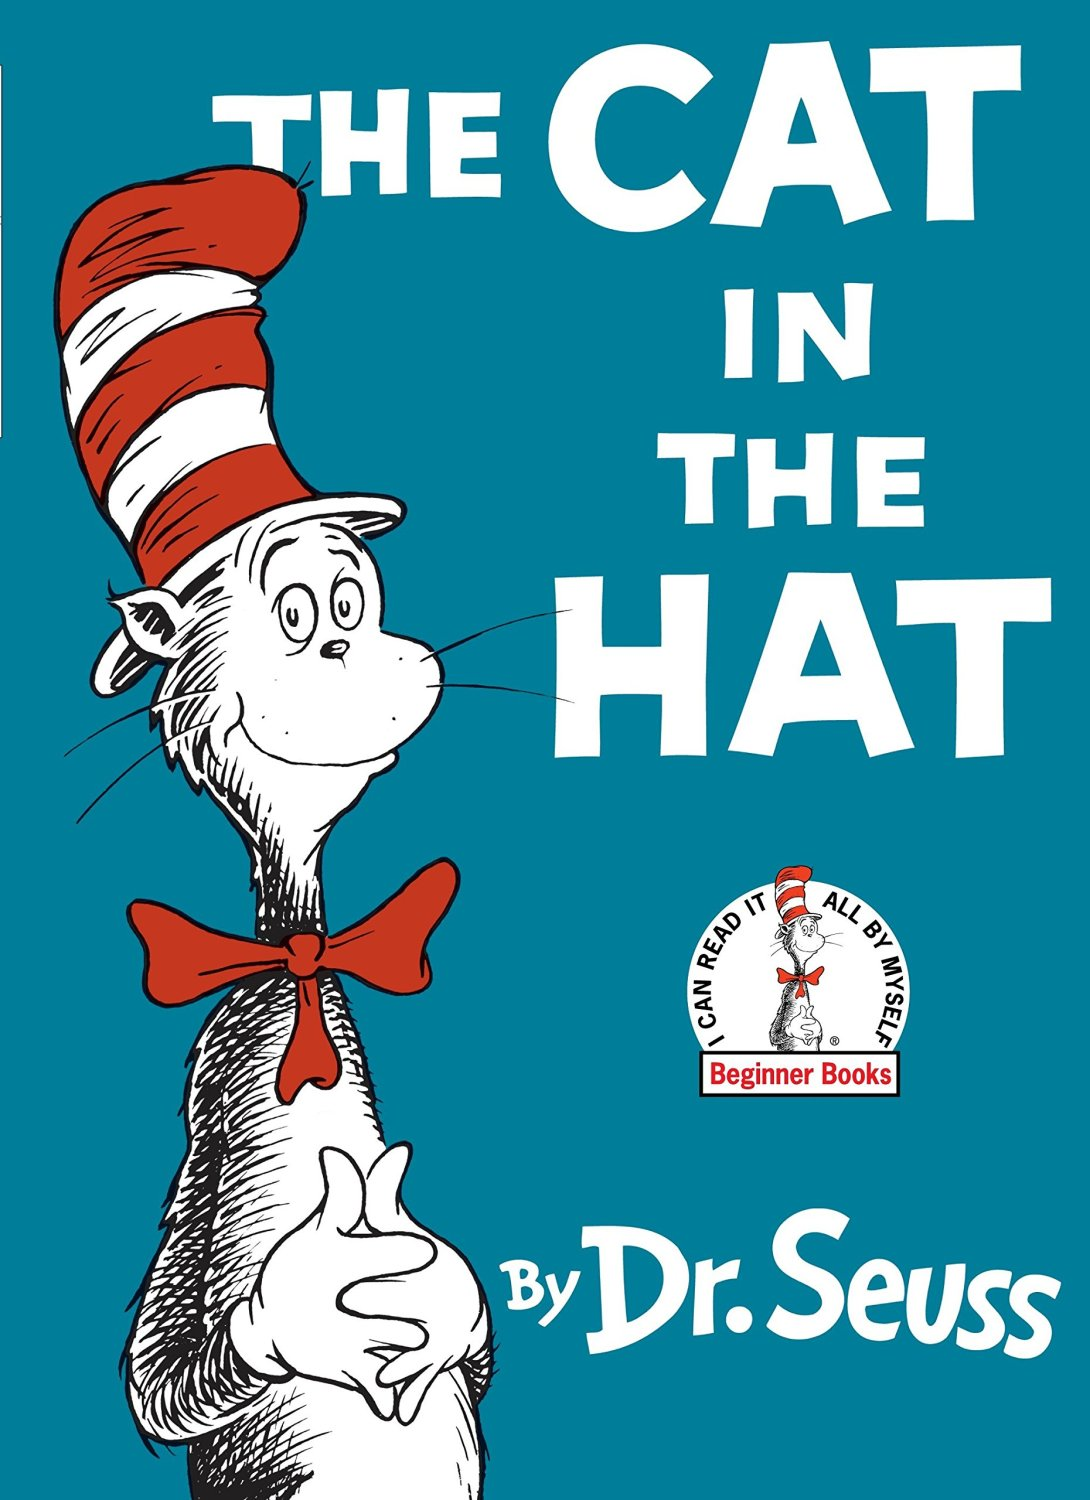 60 fun facts about dr. seuss you probably didn't know about